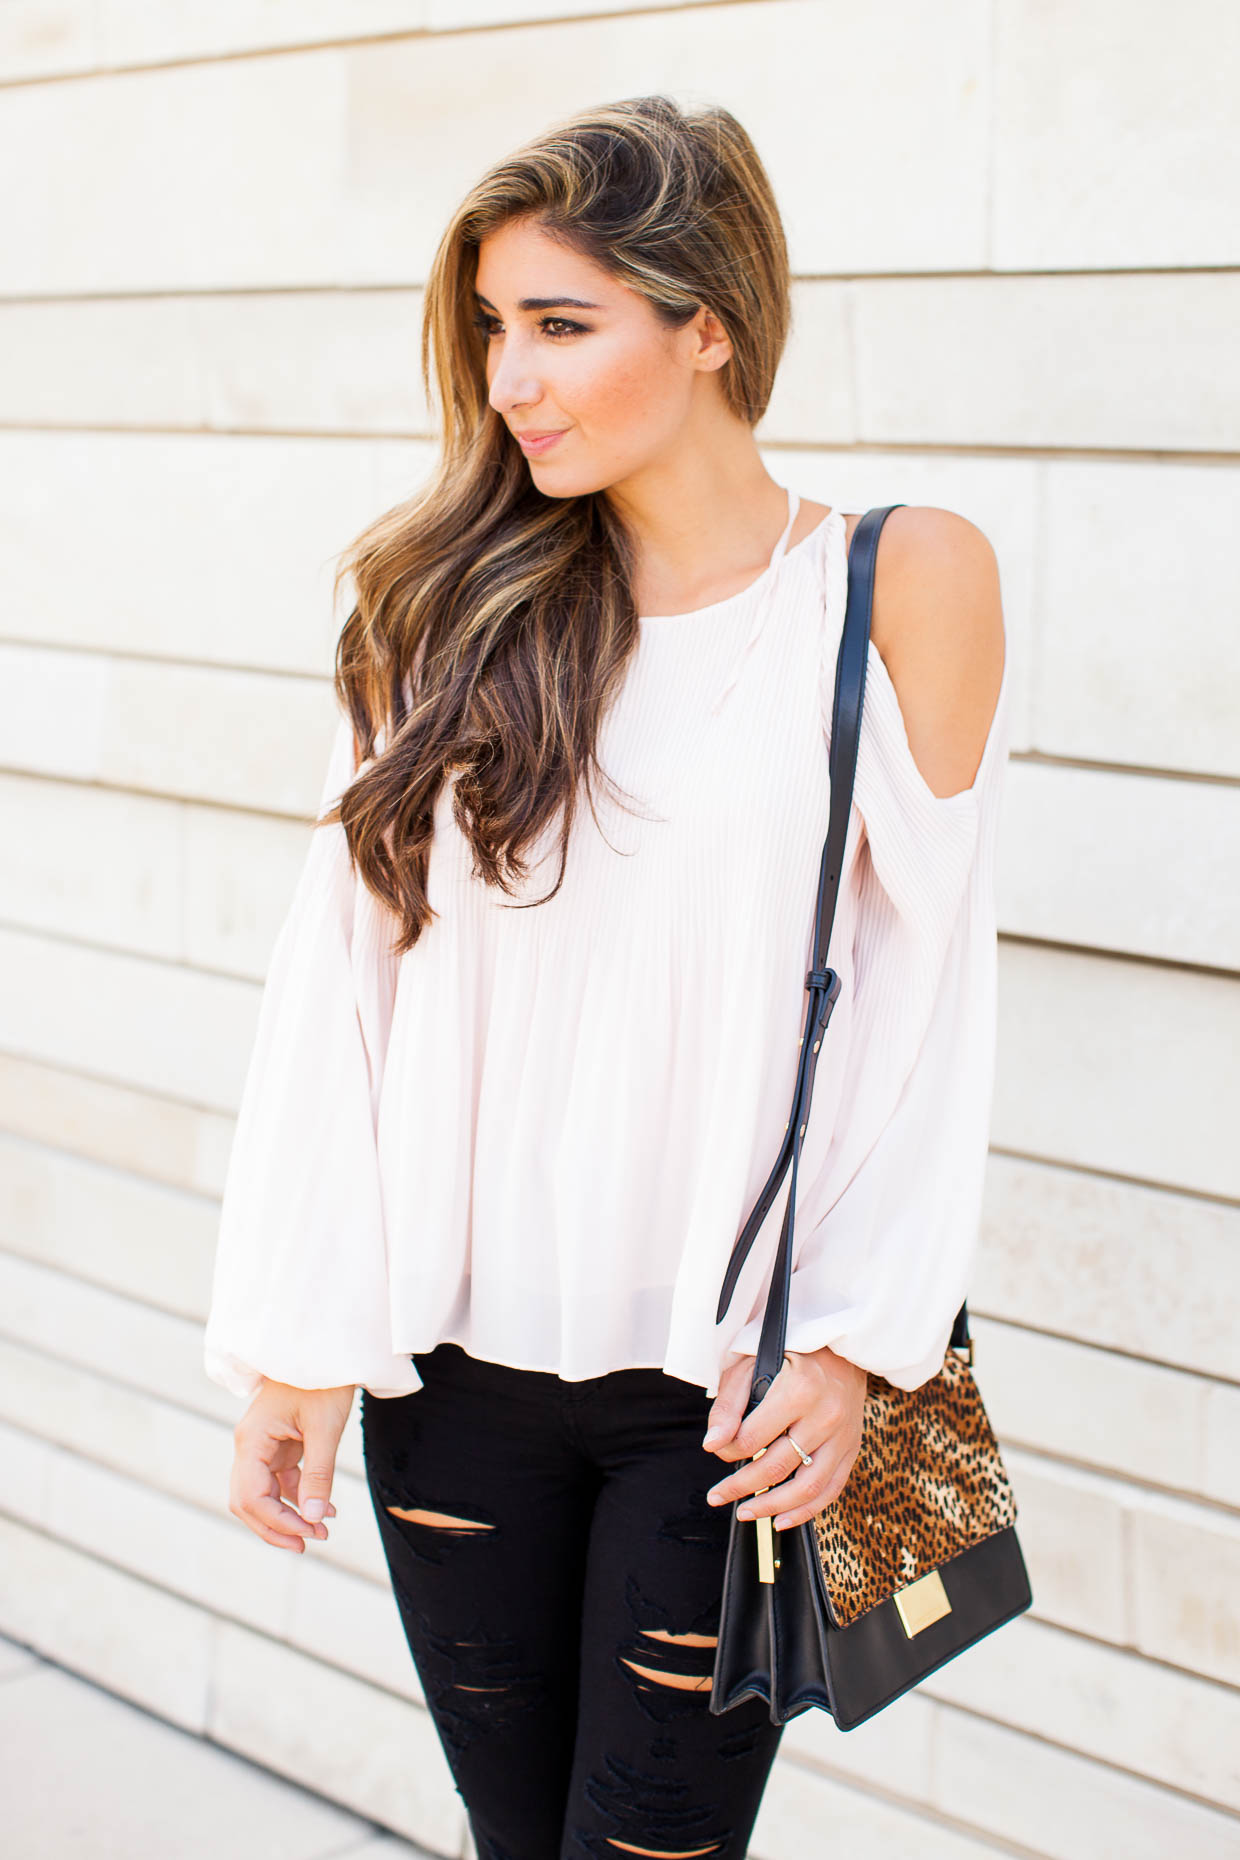 The Darling Detail is wearing an ASTR Pleated Cold Shoulder Top, A Gold E 'Sophie' High Rise Skinny Jeans, the Larsson & Jennings 'Lugano' Mesh Strap Watch, and a Vince Camuto 'Abril' Leather Shoulder Bag.